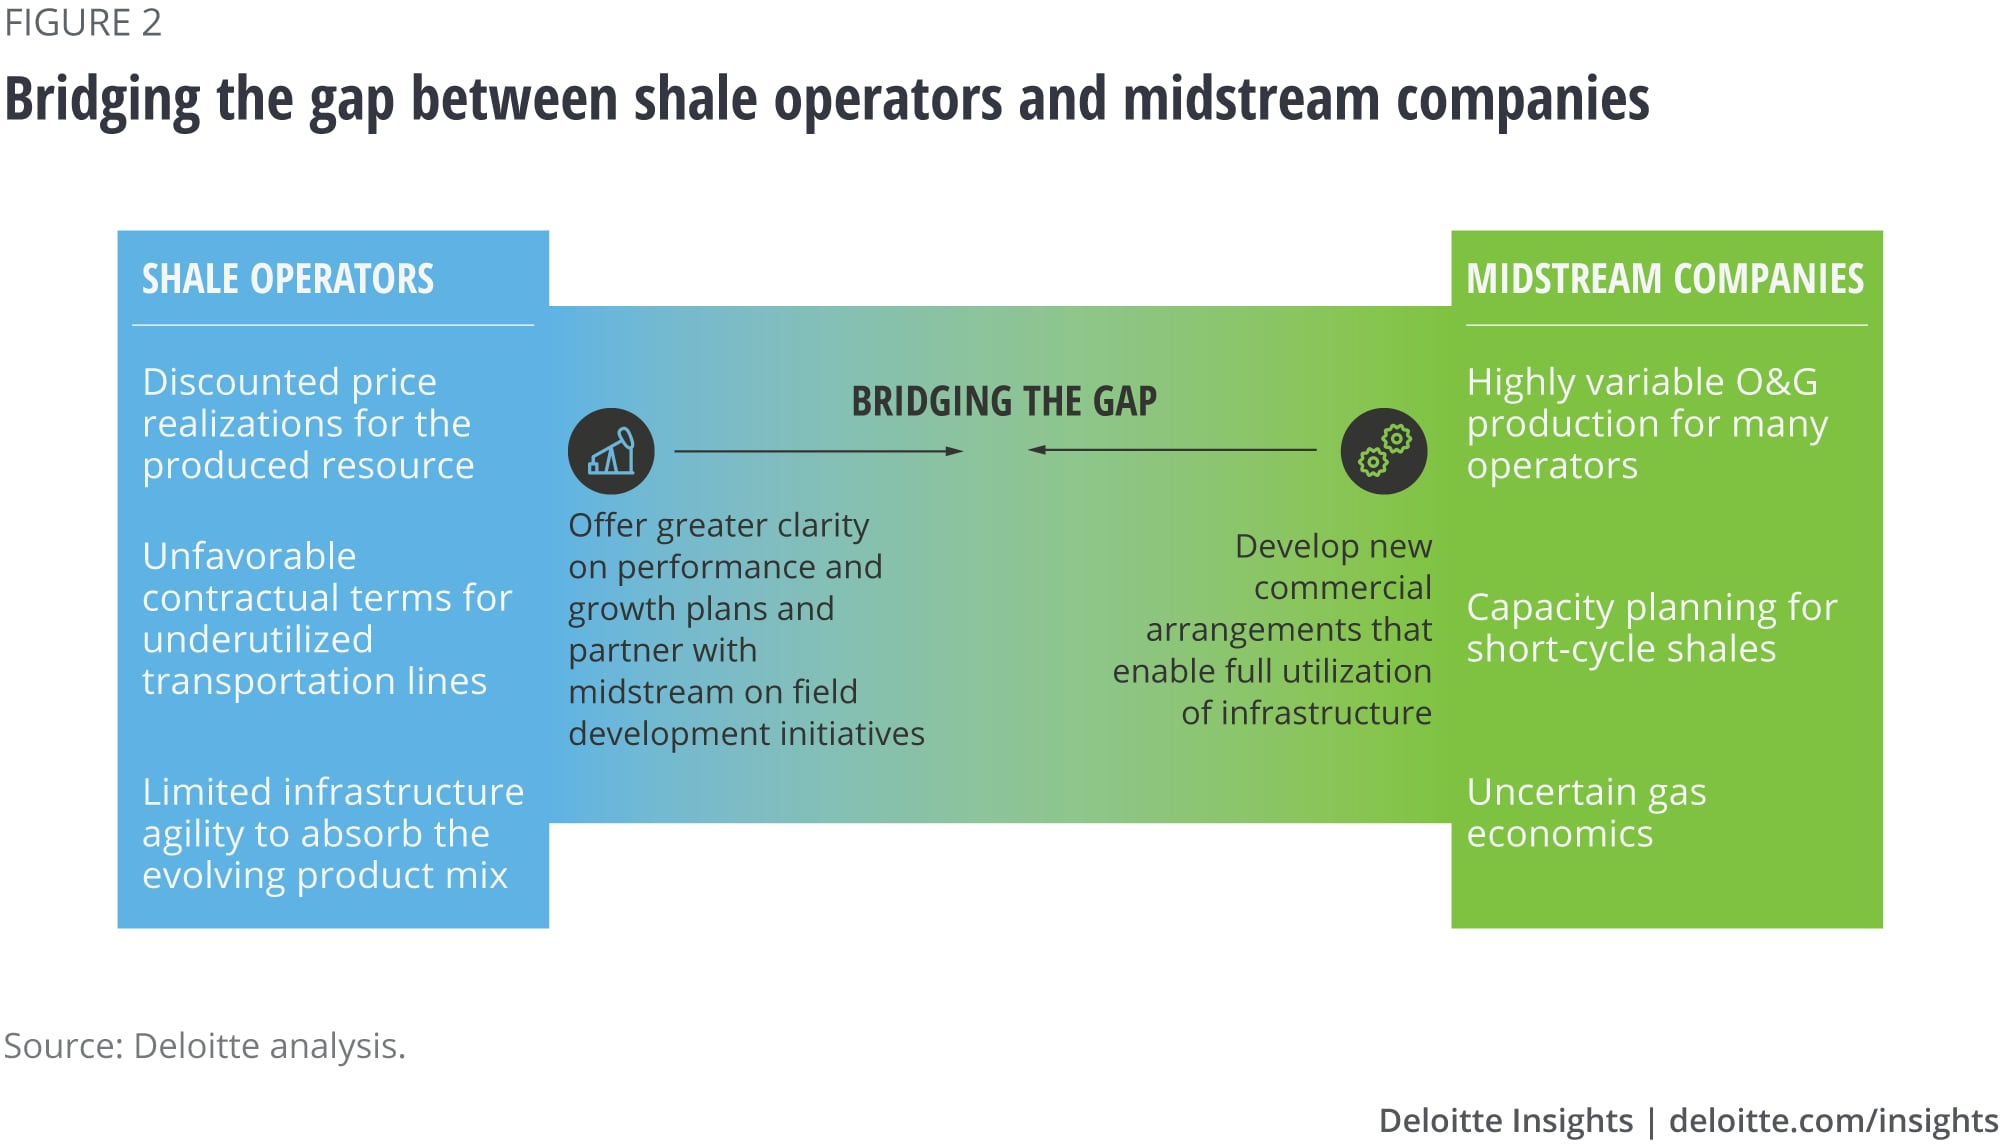 Bridging the gap between shale operators and midstream companies